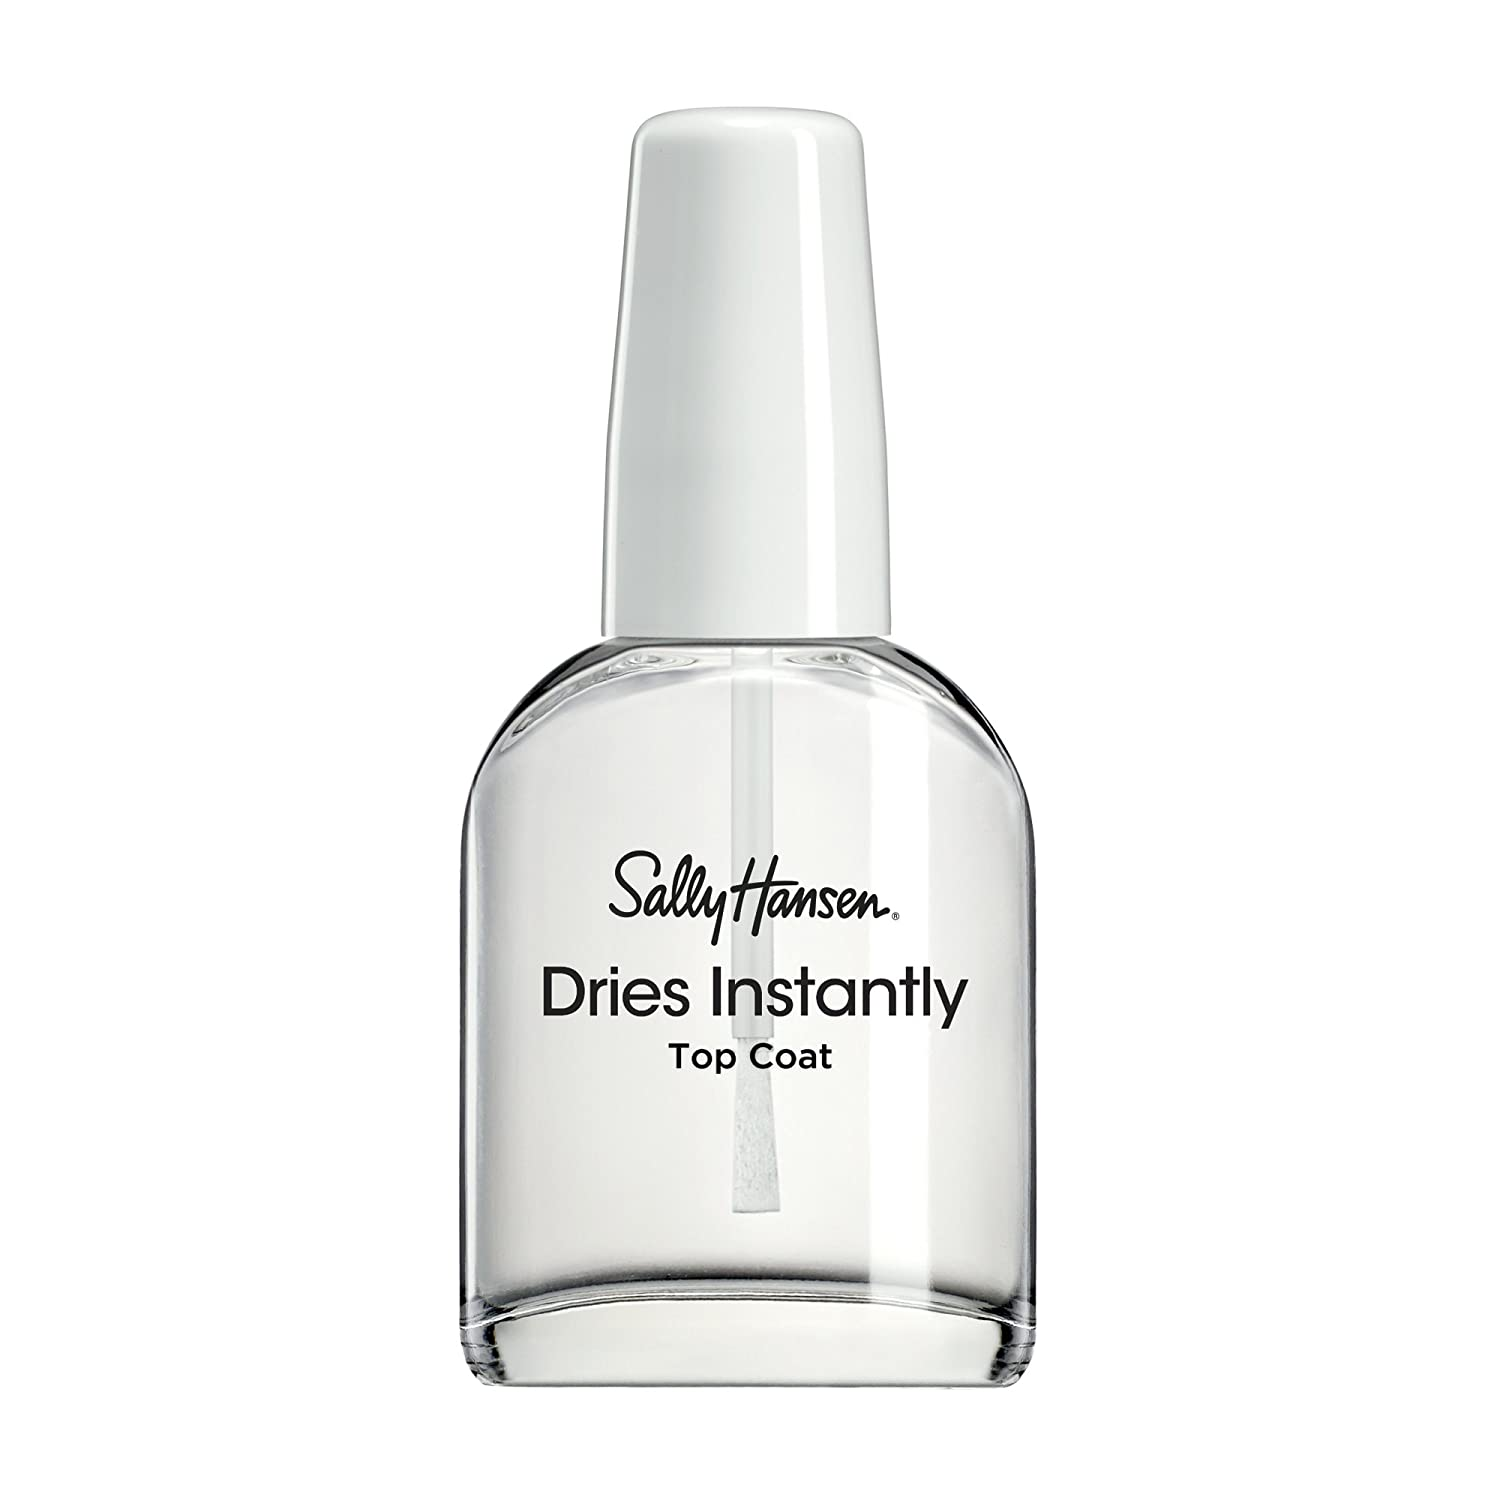 Sally Hansen Dries Instantly Top Coat, 0.45 Fluid Ounce Coty Beauty